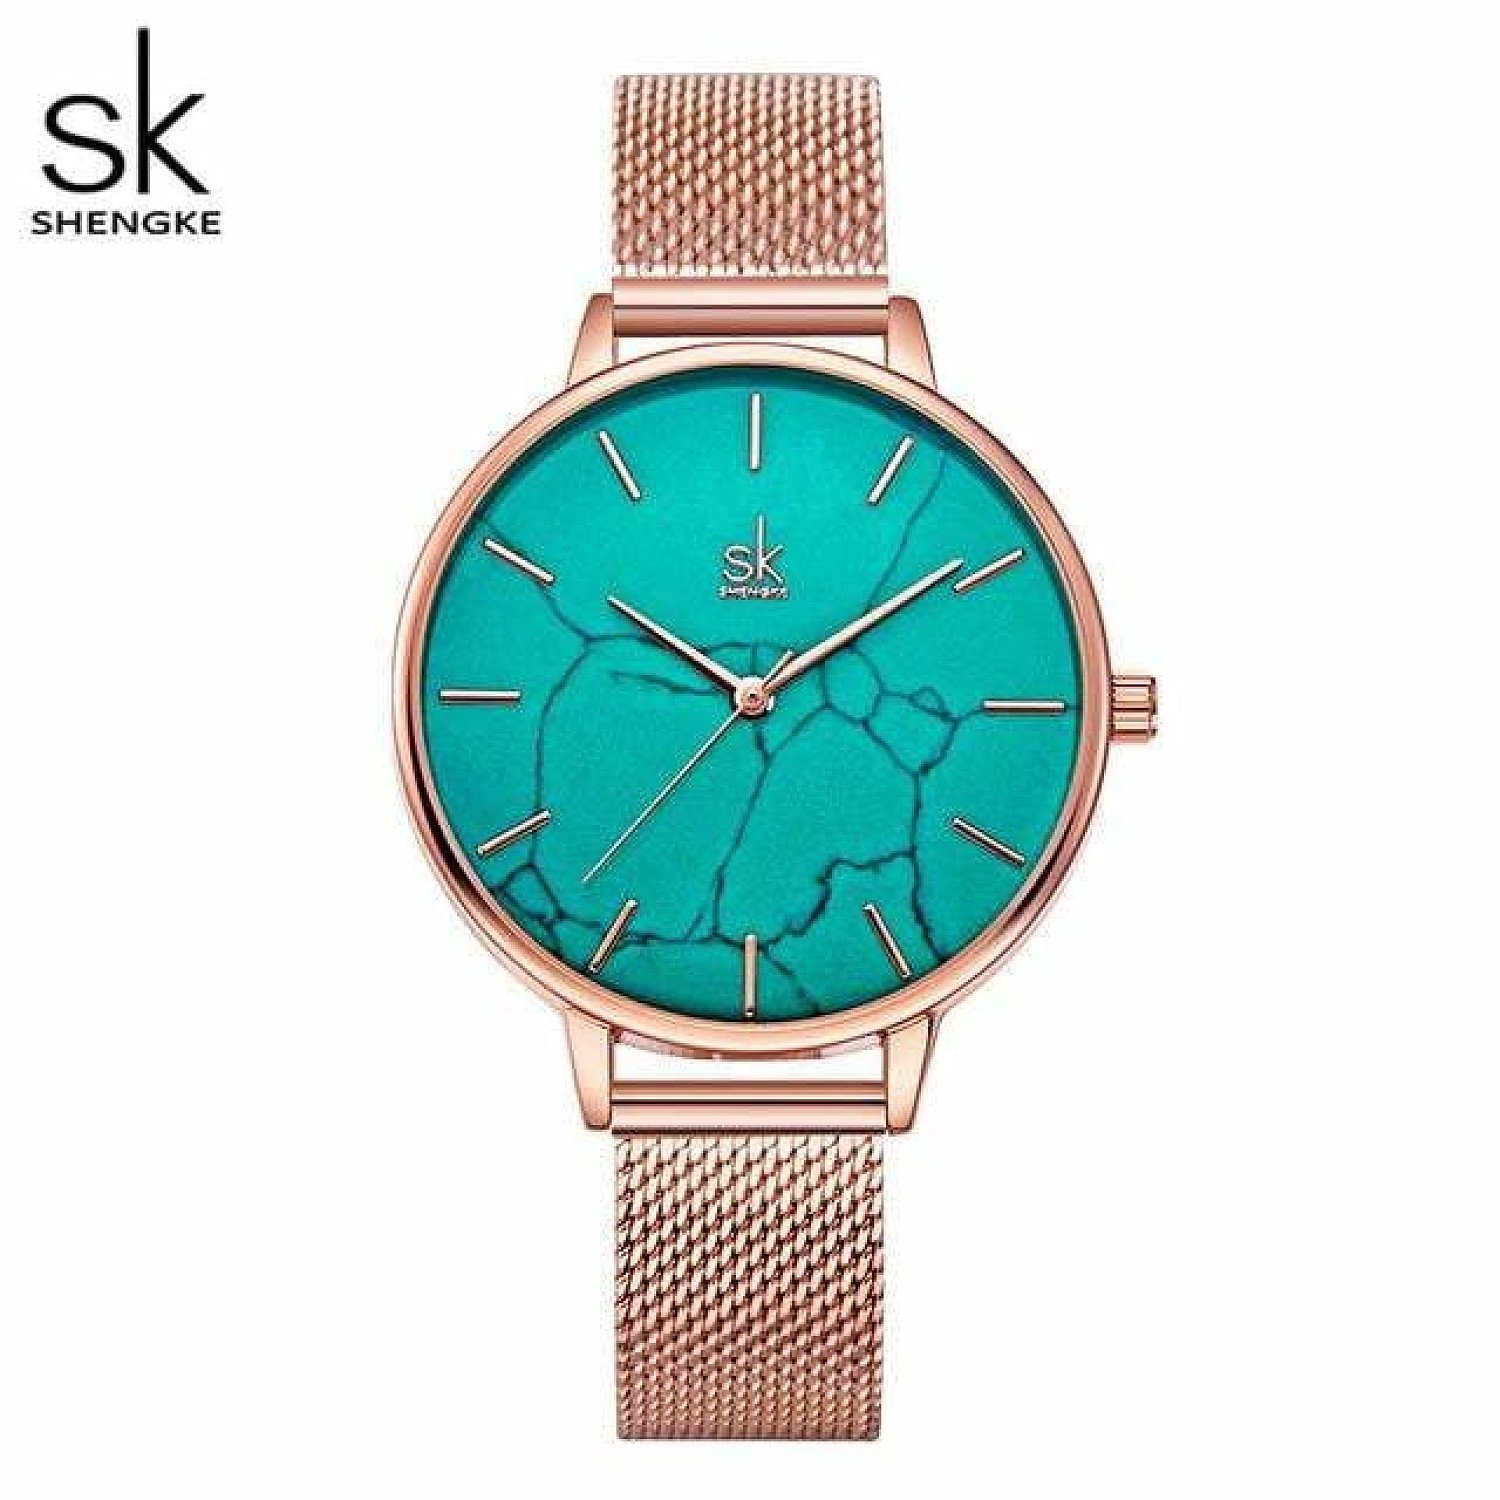 Shengke Emerald Dial Women Watch Rosegold Stainless Steel Band Watch Marble Surface Reloj Mujer New